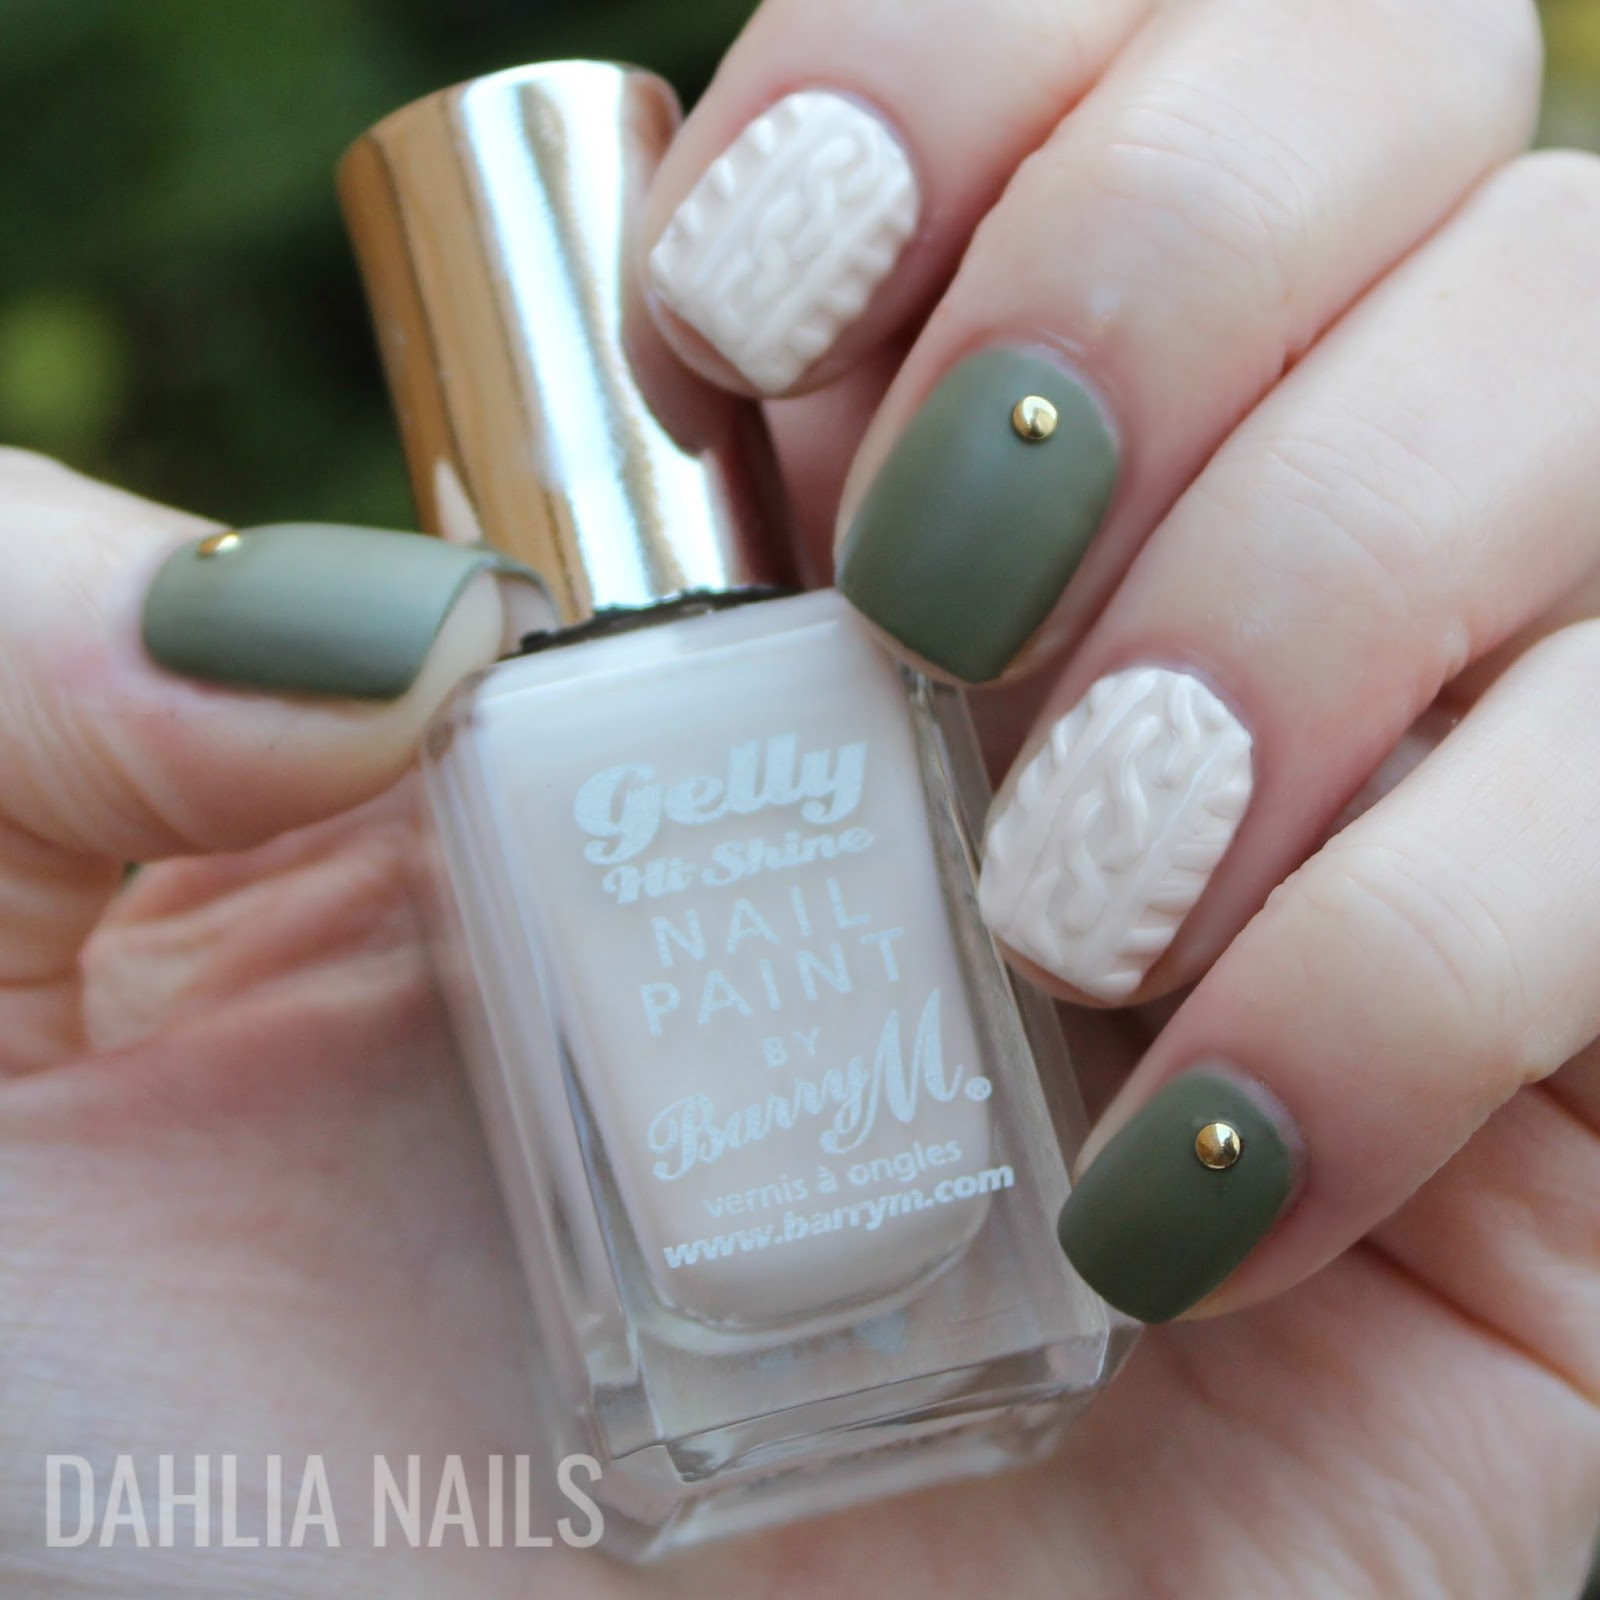 Dahlia Nails: 3D Winter Sweater Nails